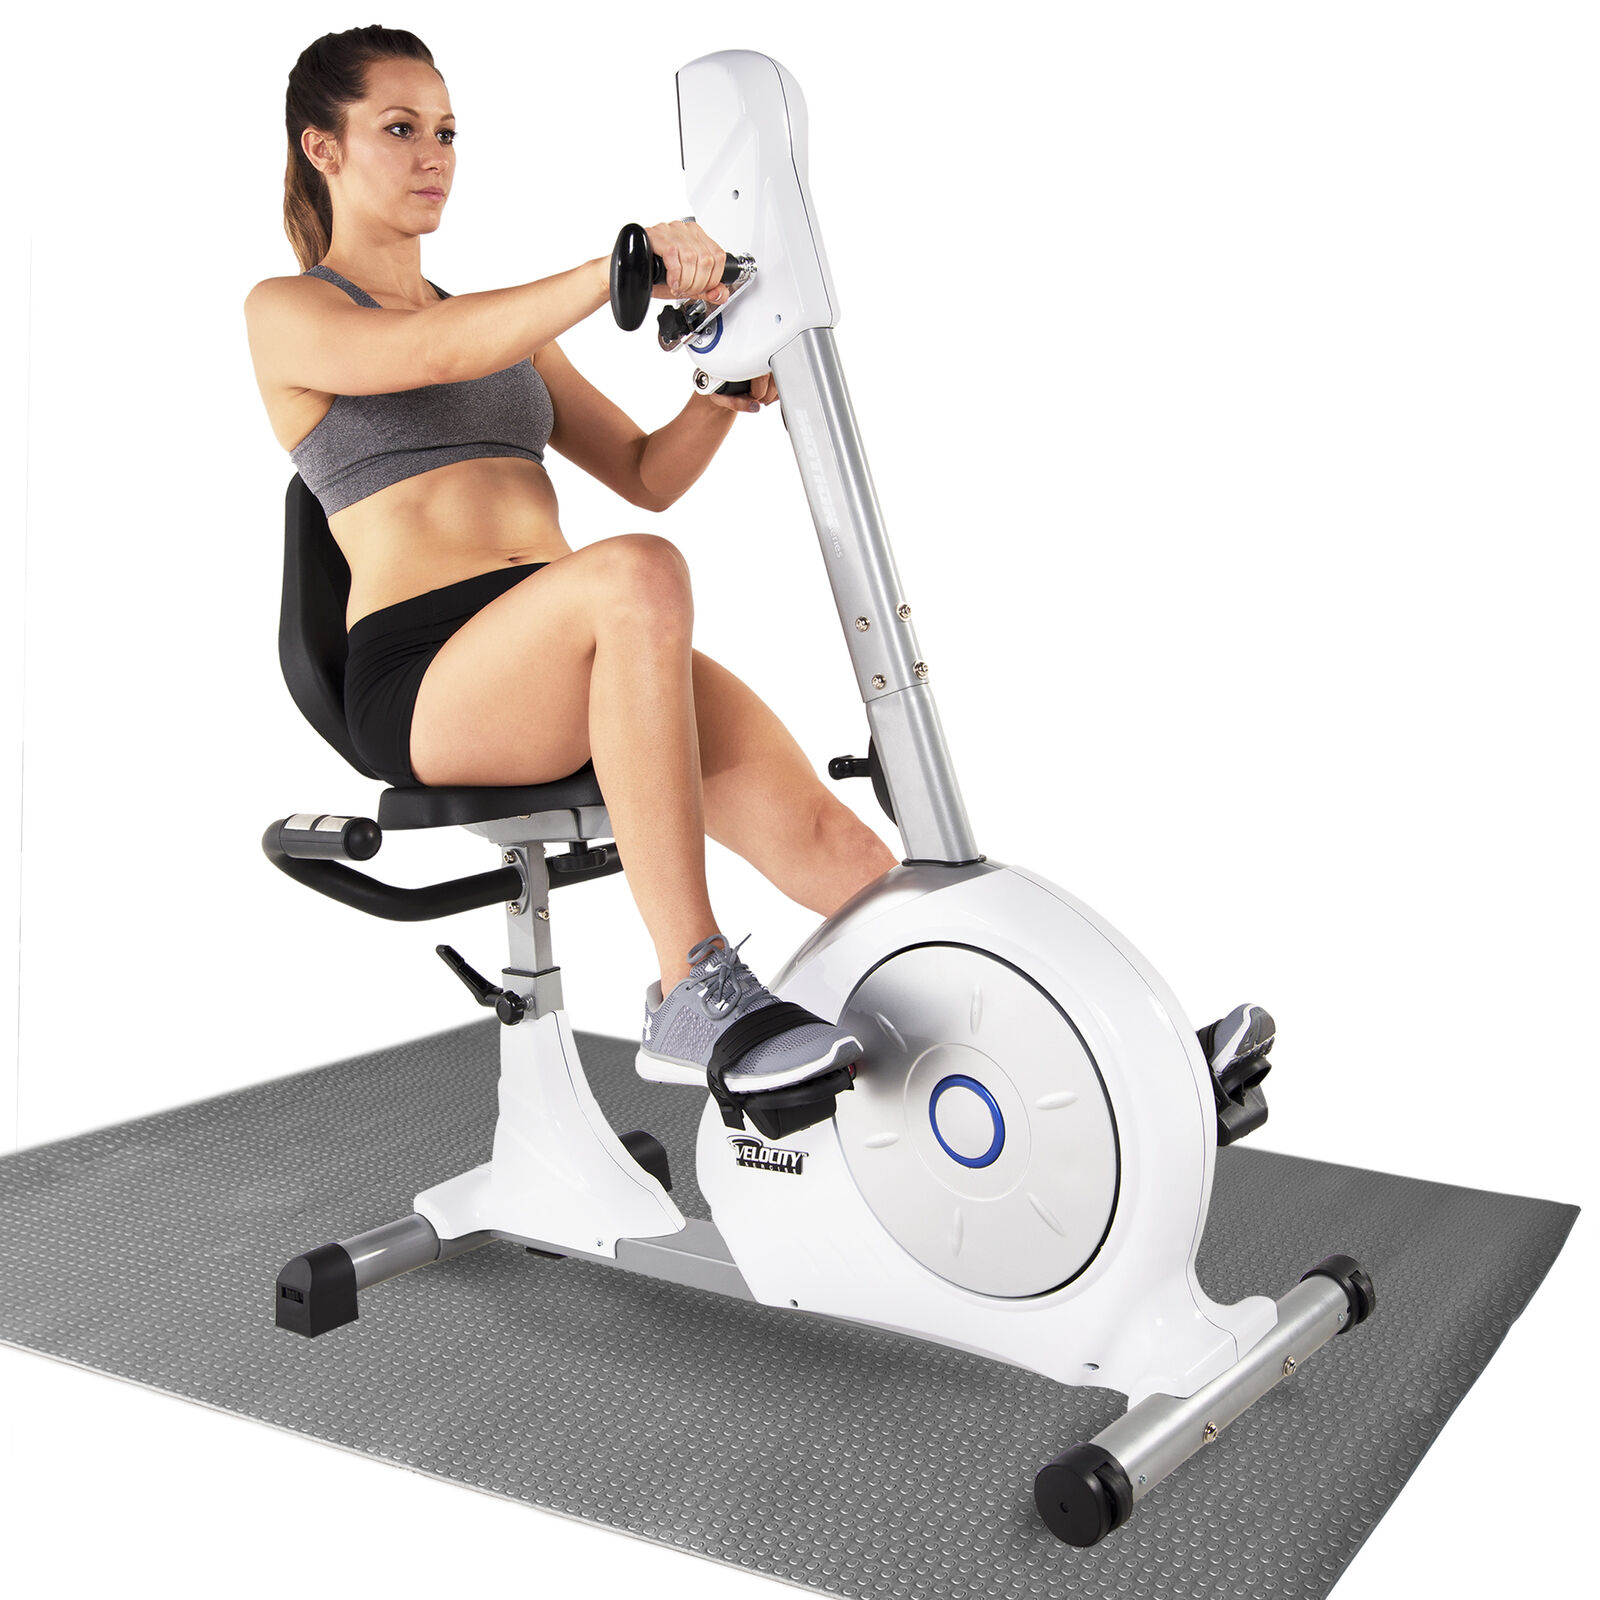 Velocity Exercise Dual Motion Recumbent Exercise Bike and Eq